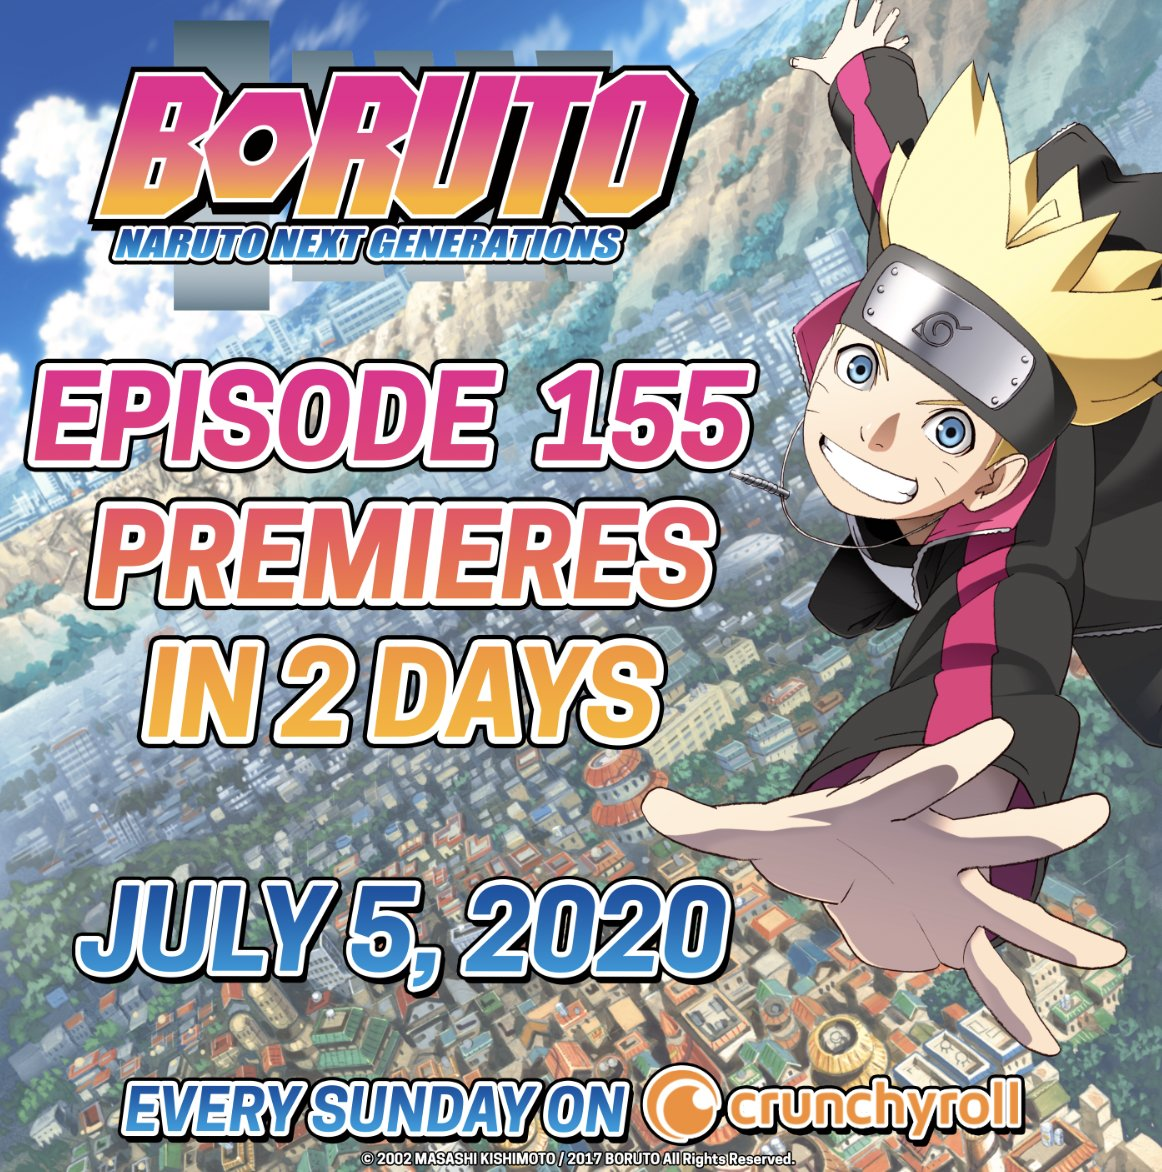 2 DAYS LEFT! pic.twitter.com/70MP1oGhzt  by BORUTO: NARUTO NEXT GENERATIONS